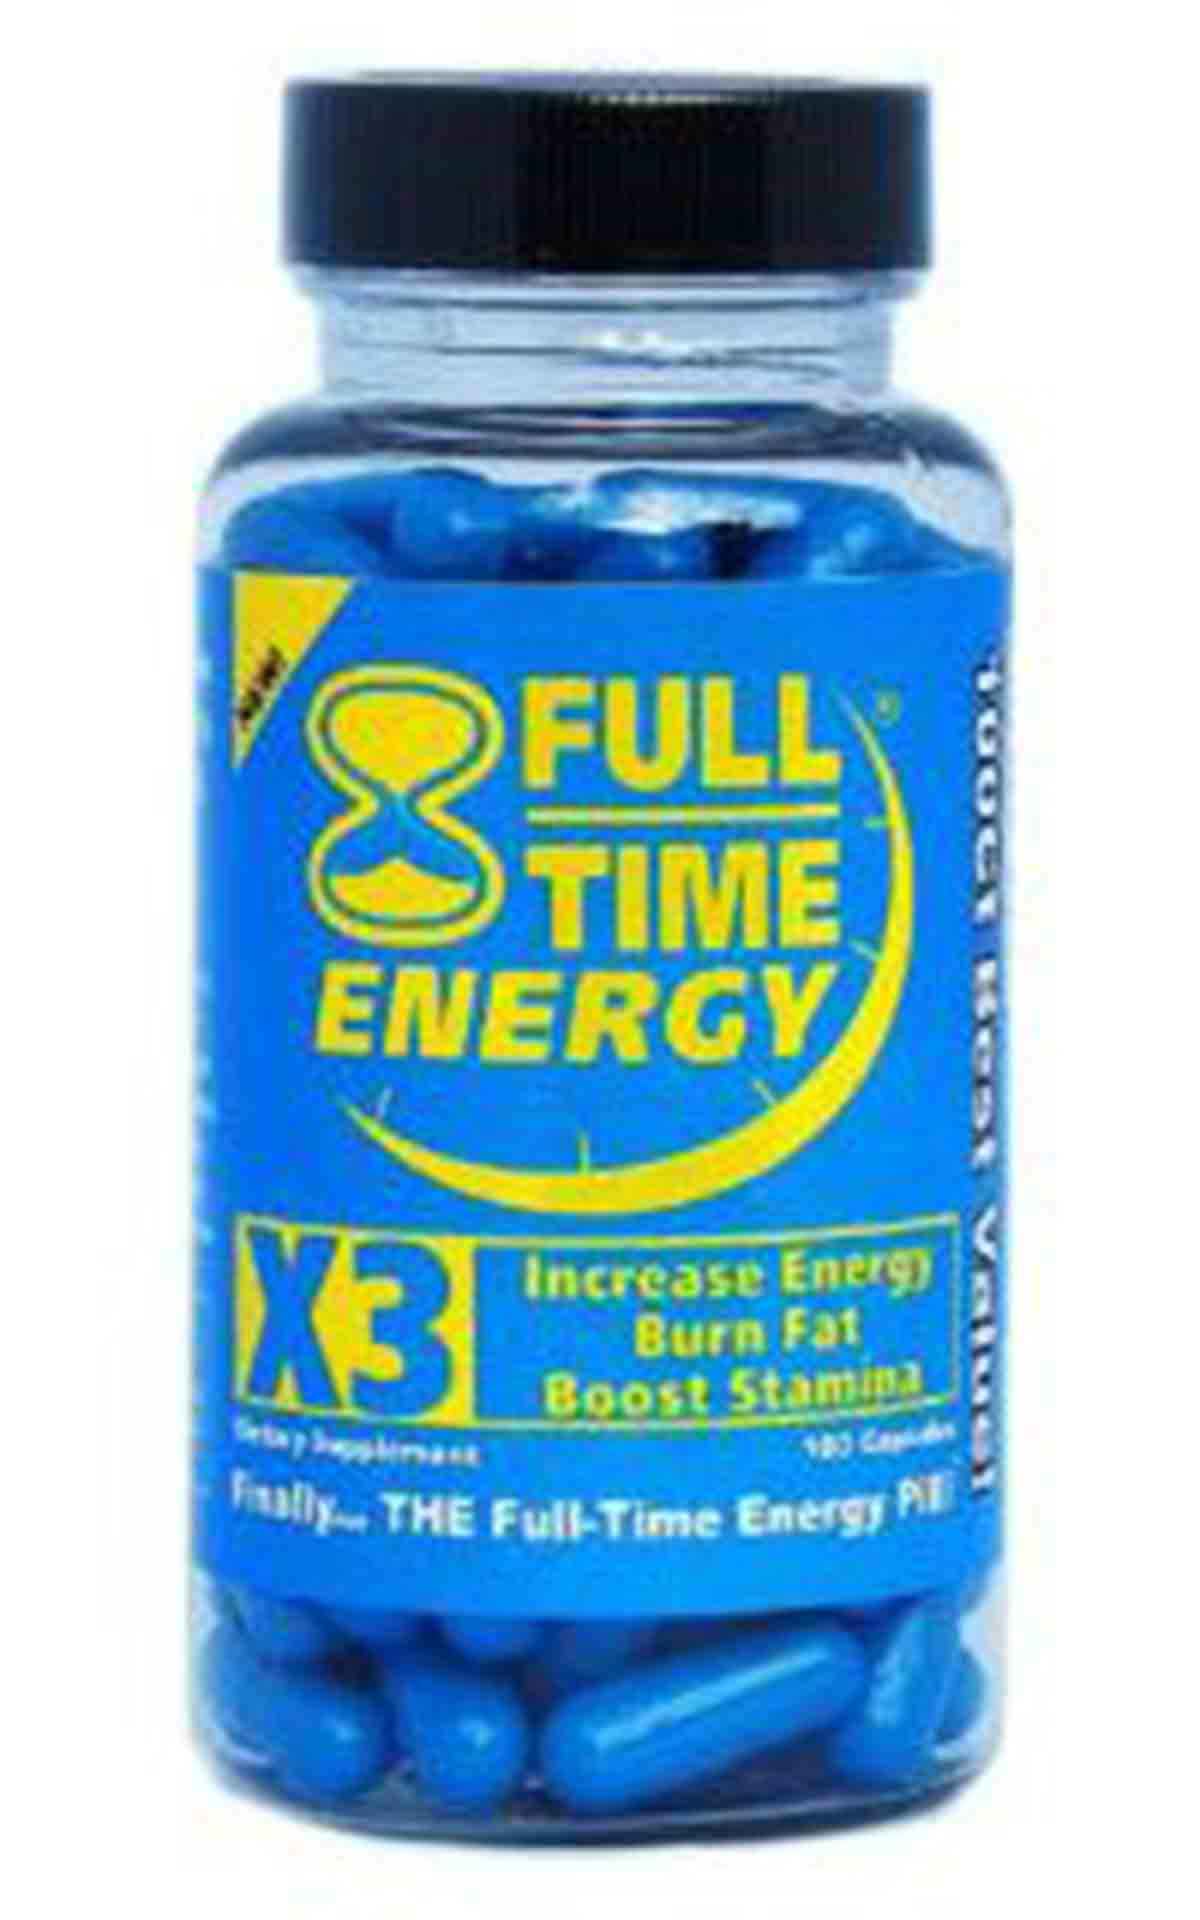 Full-Time Energy X3